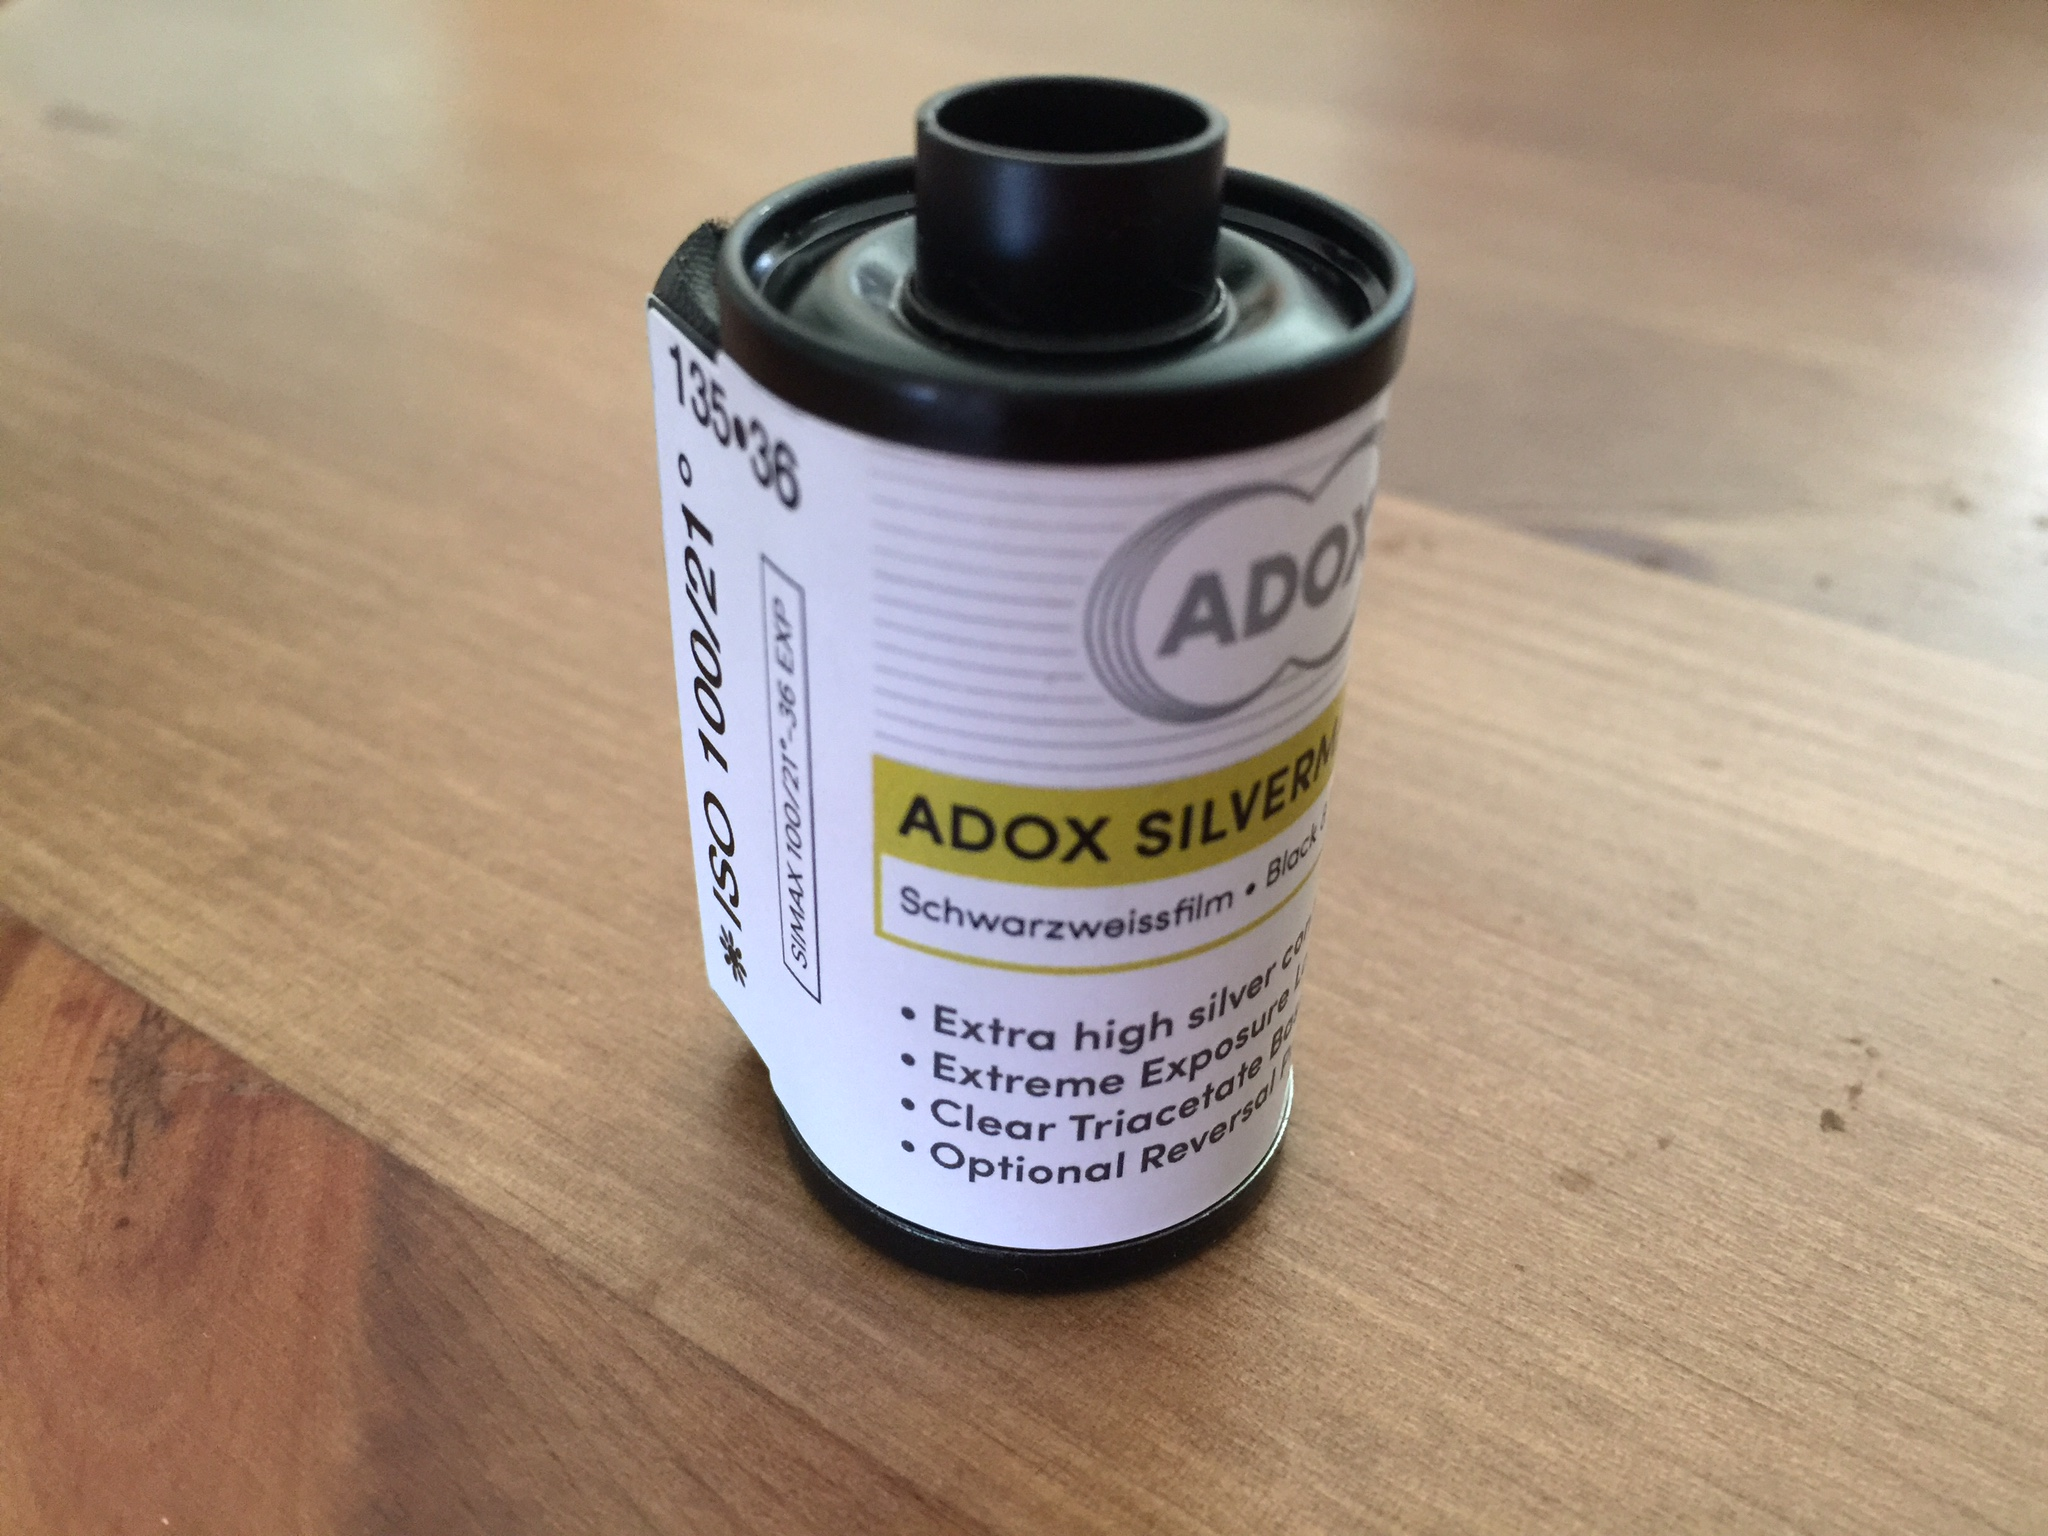 The exterior of a roll of 35mm Adox Silvermax film